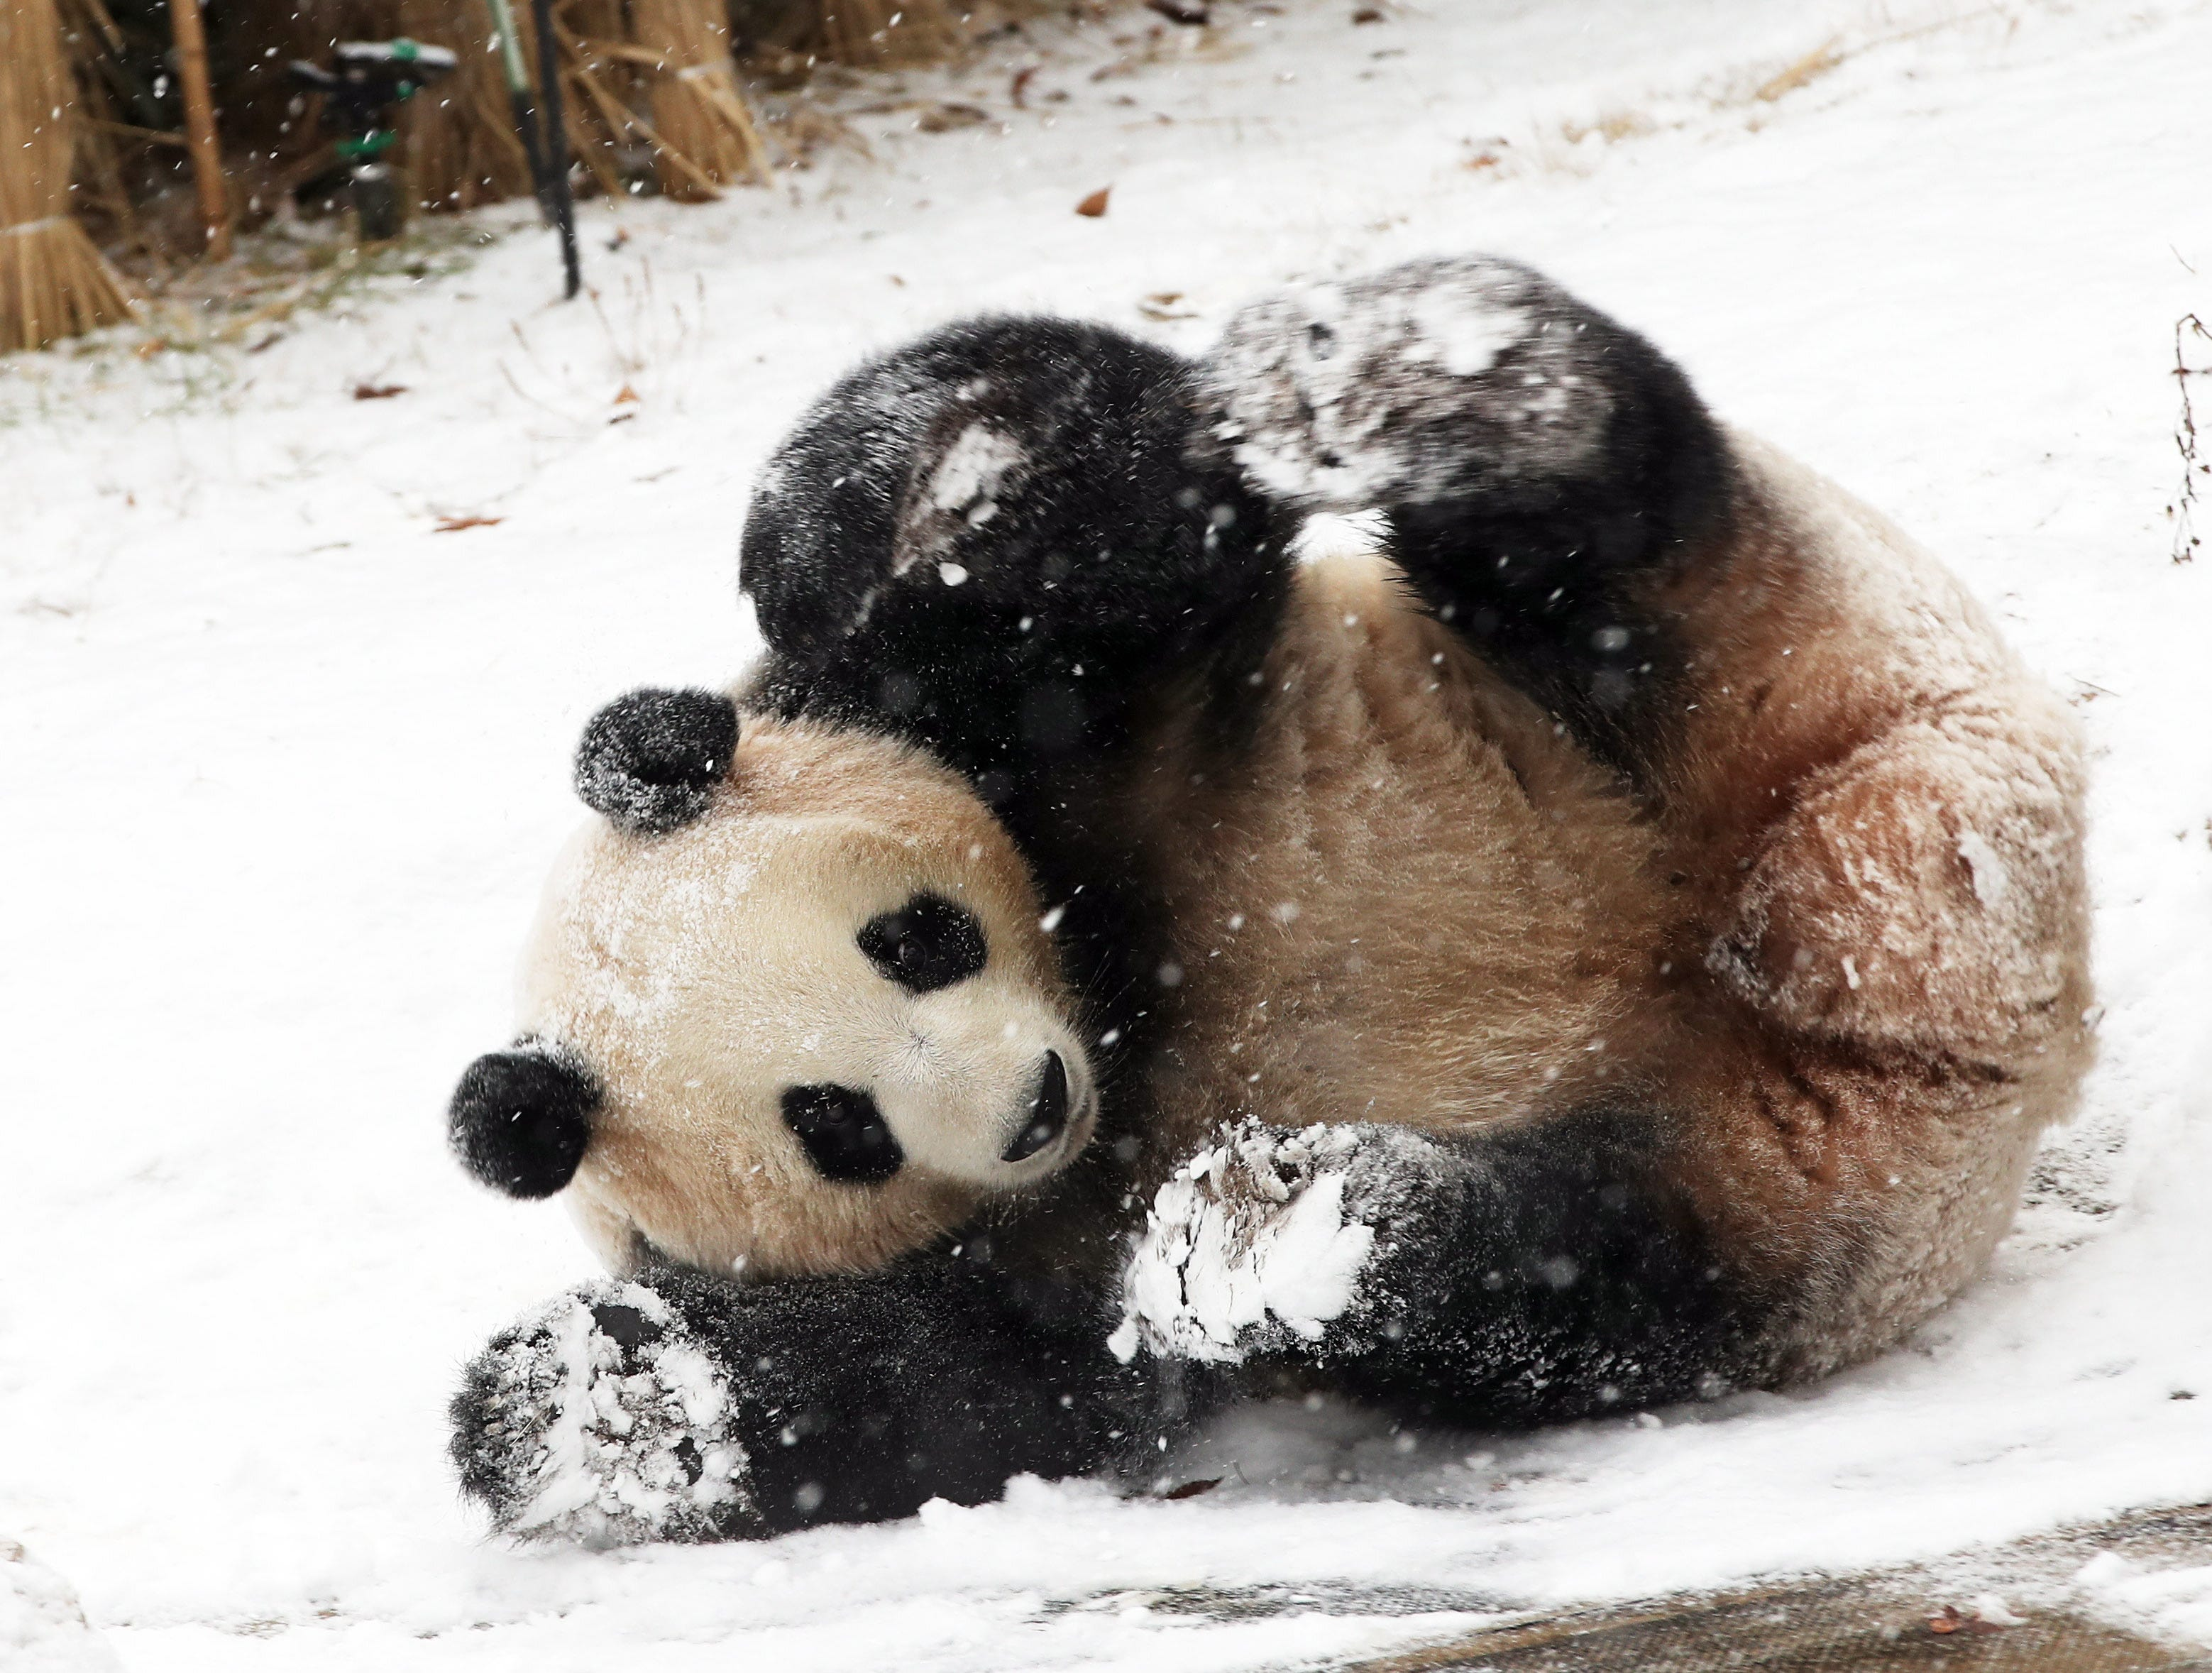 epa07227799 The female panda Aibao joyfully rolls in the snow at the amusement park Everland in Yongin, south of Seoul, South Korea, 13 December 2018.  EPA-EFE/YONHAP SOUTH KOREA OUT